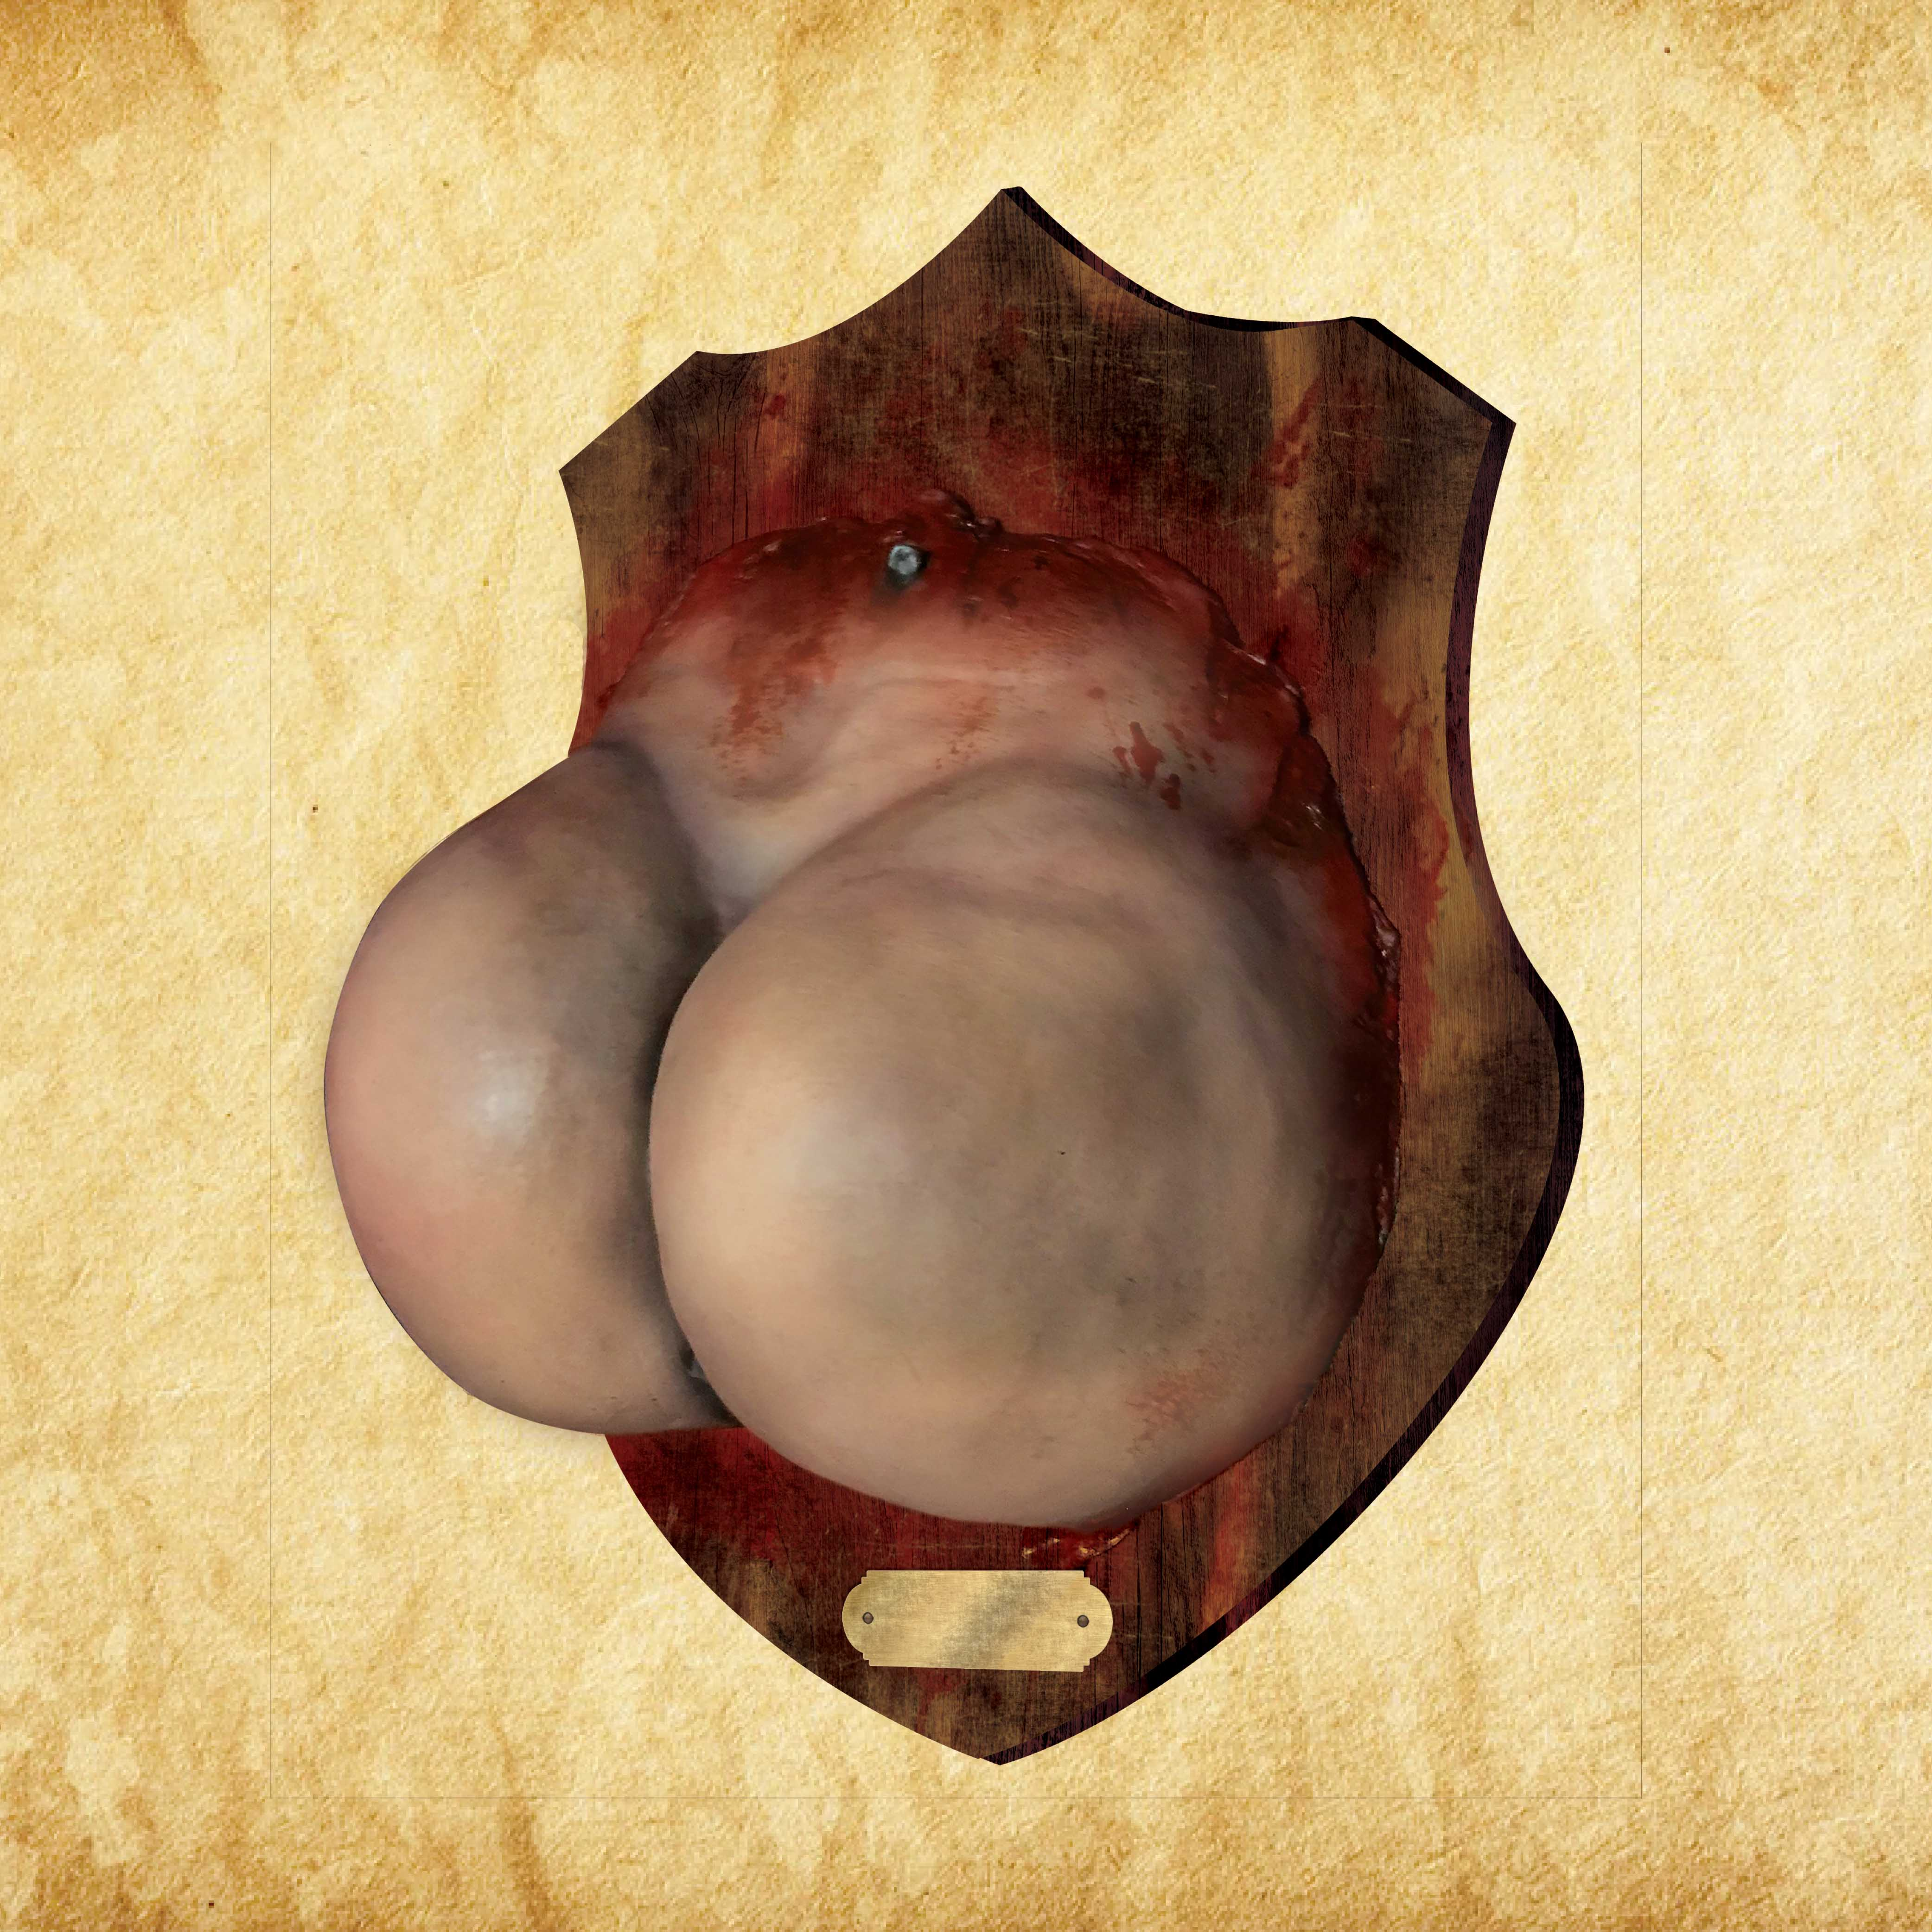 Butt Plaque - Round N' Plump